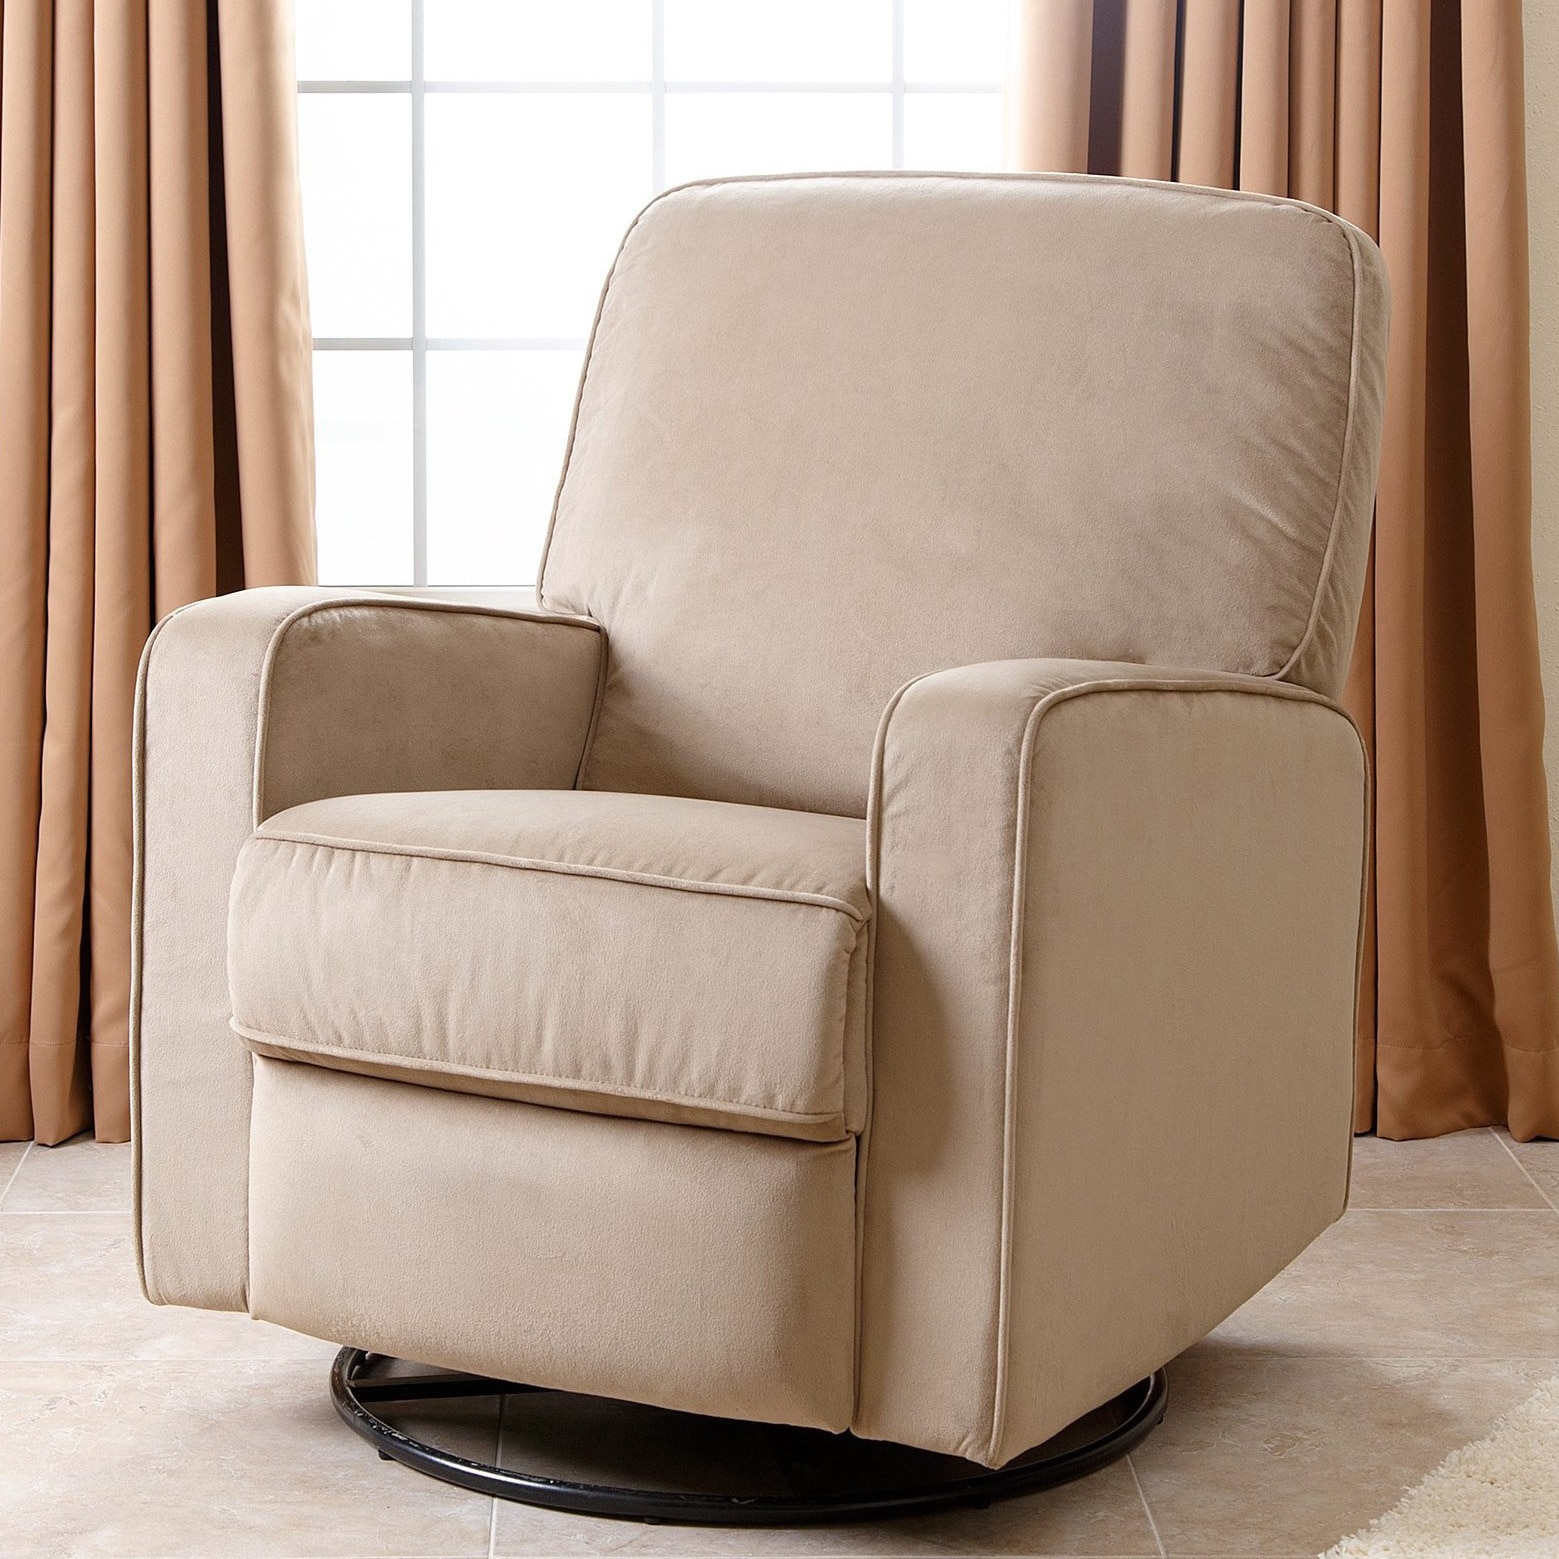 abbyson bella beige fabric swivel glider recliner chair free